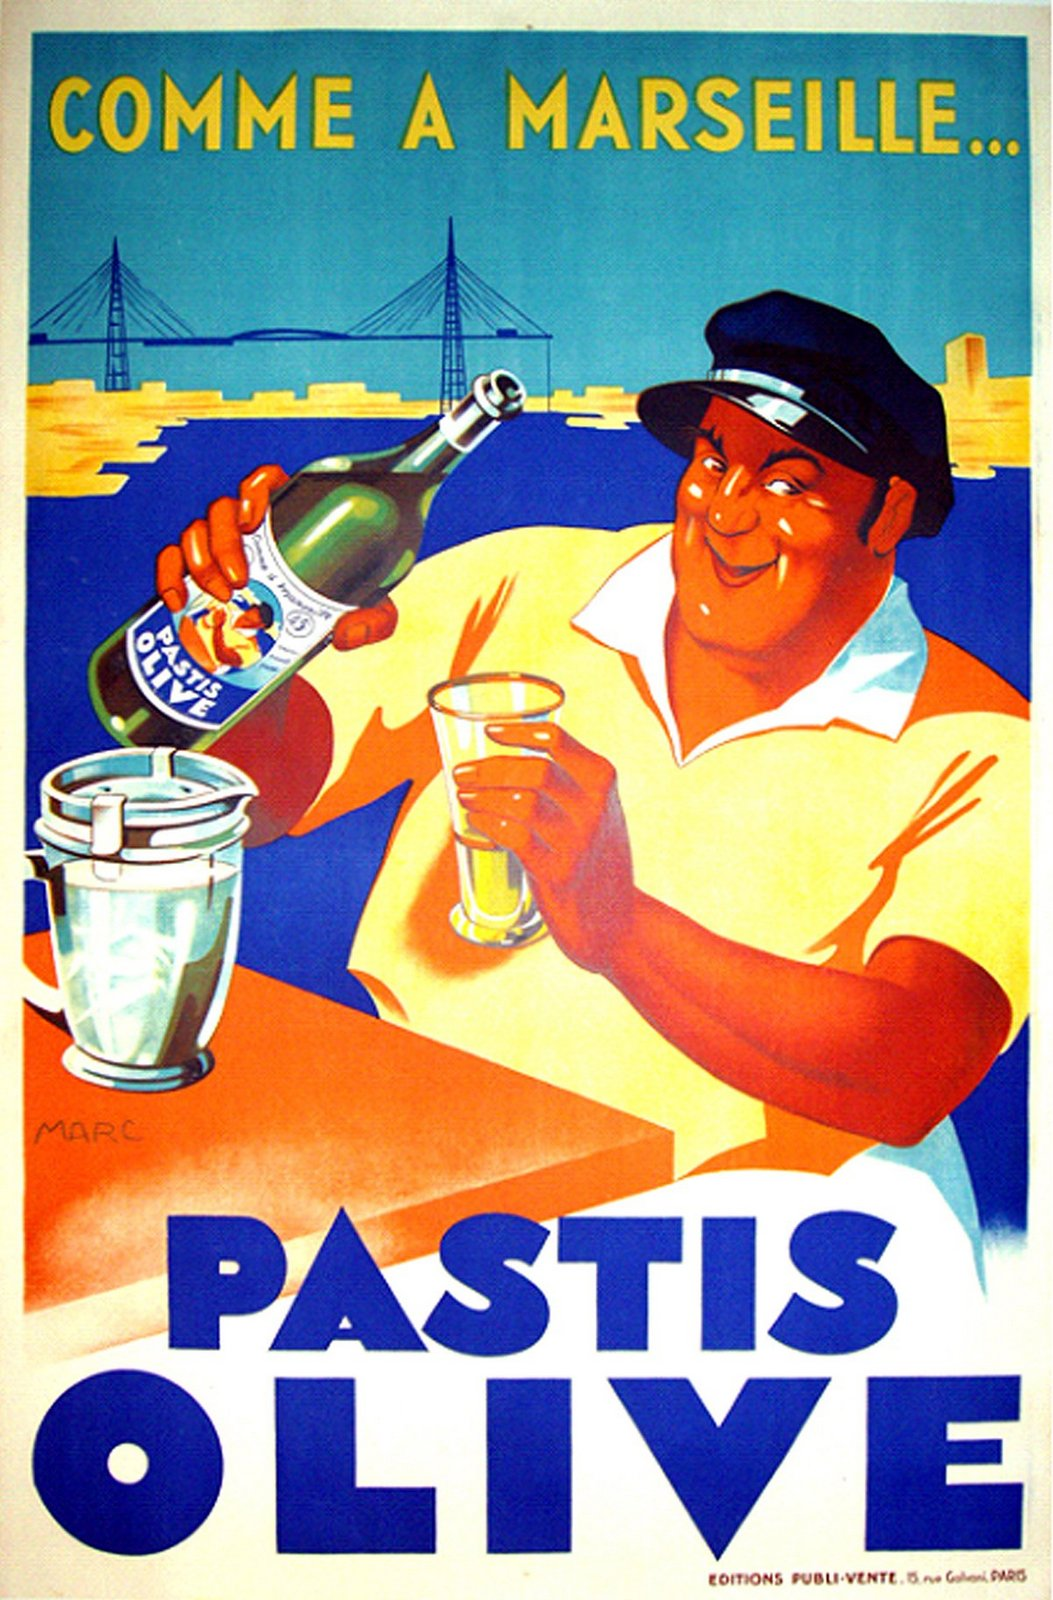 Pastis, the aperitif. Discover what to eat in Marseille, the oldest city in France and with culinary influences from Italy, Spain and North Spain.